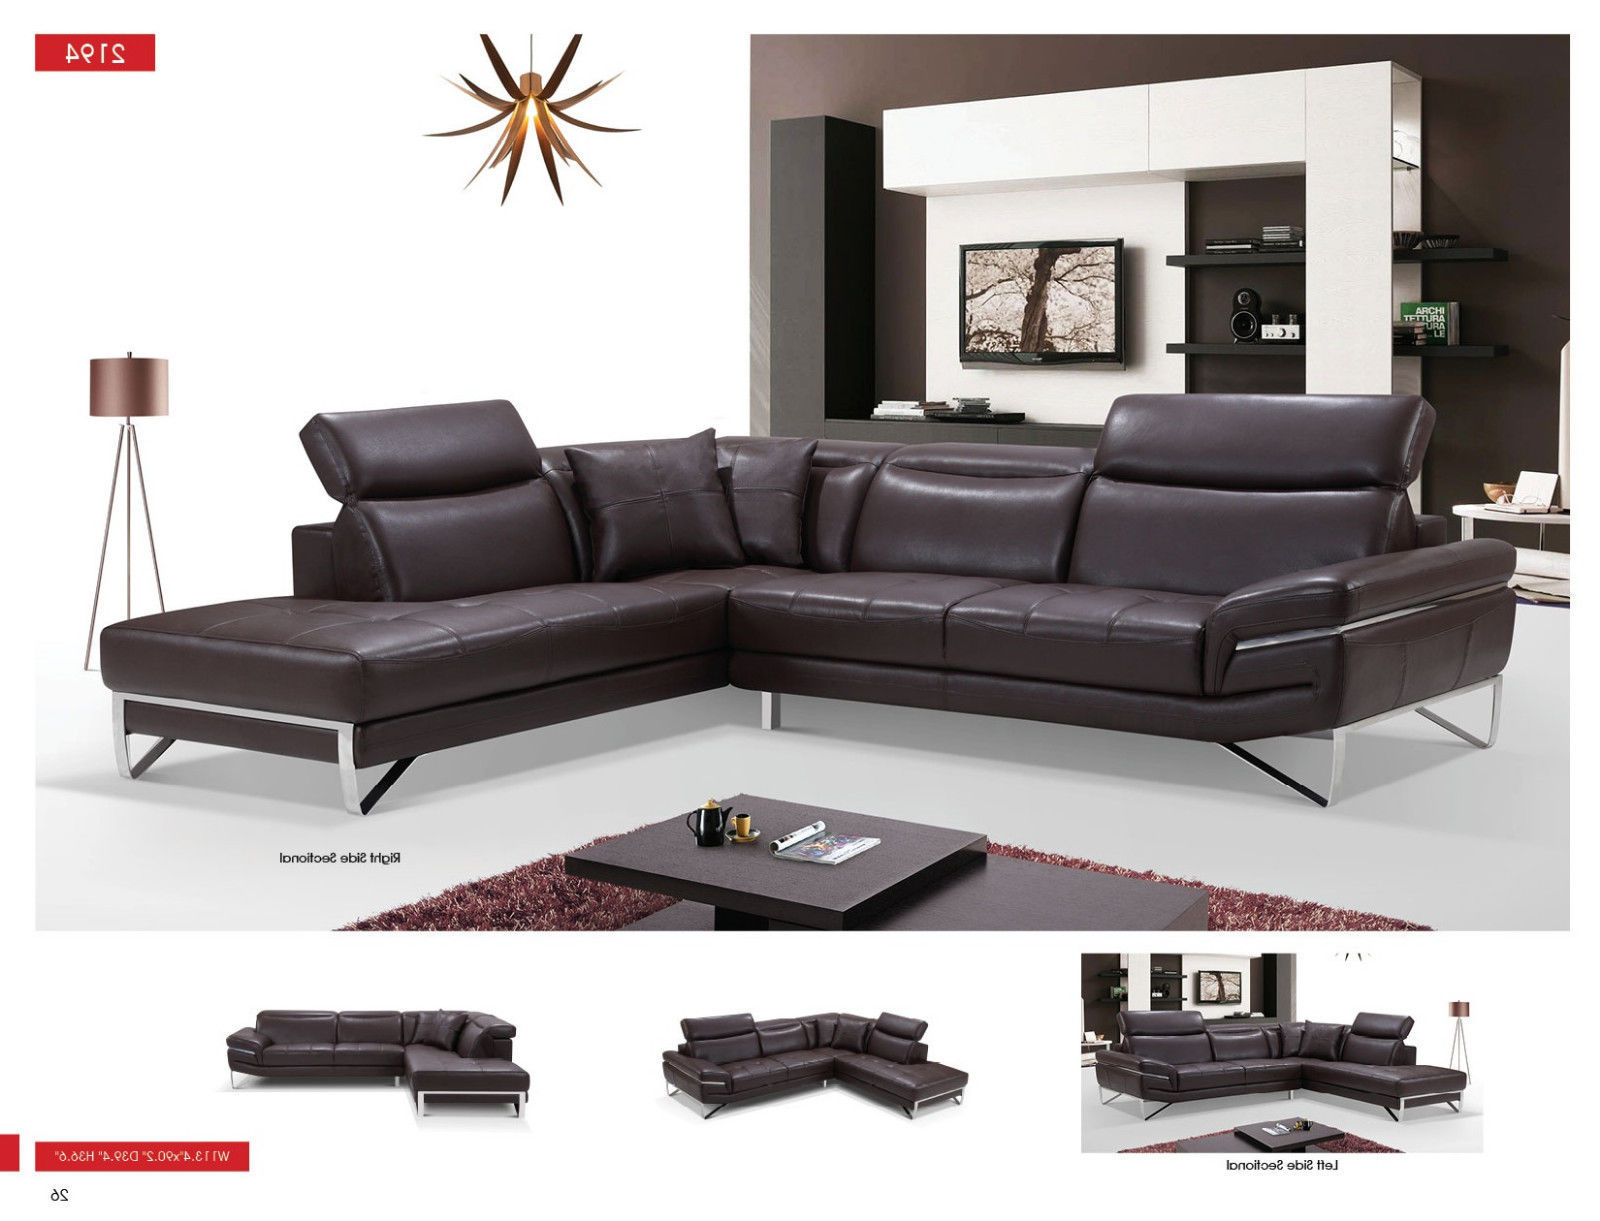 ESF 2194 Leather Sectional Sofa Brown Chic Contemporary Modern Left Hand Facing